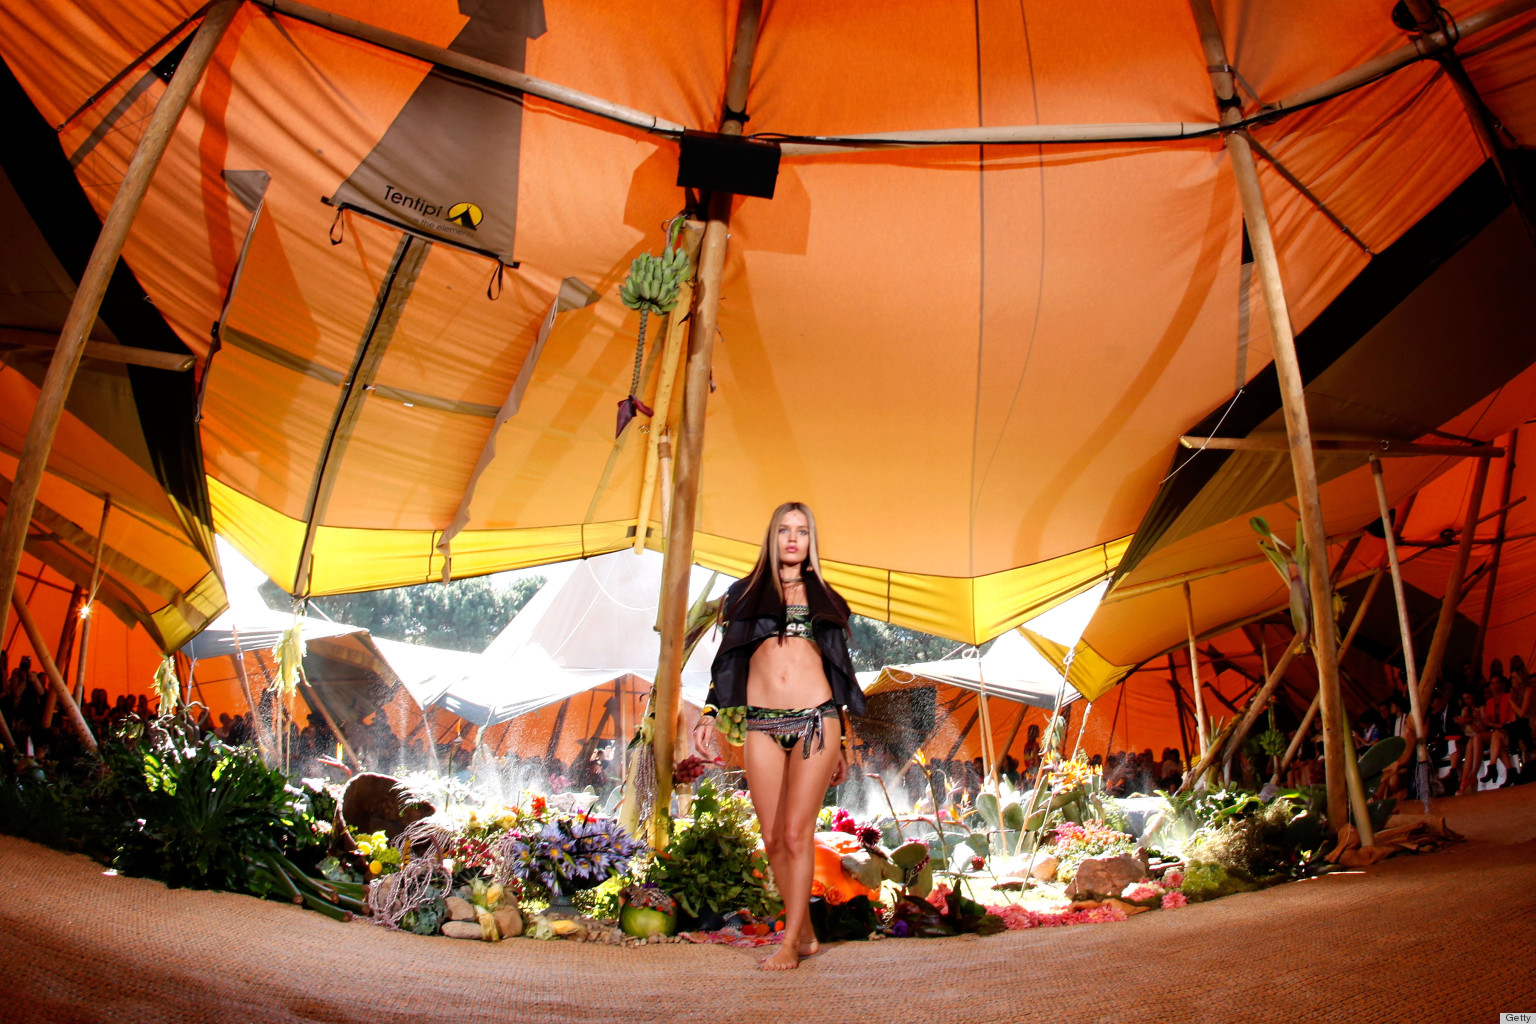 Teepee Fashion Show Staged In Australia Stars Georgia May